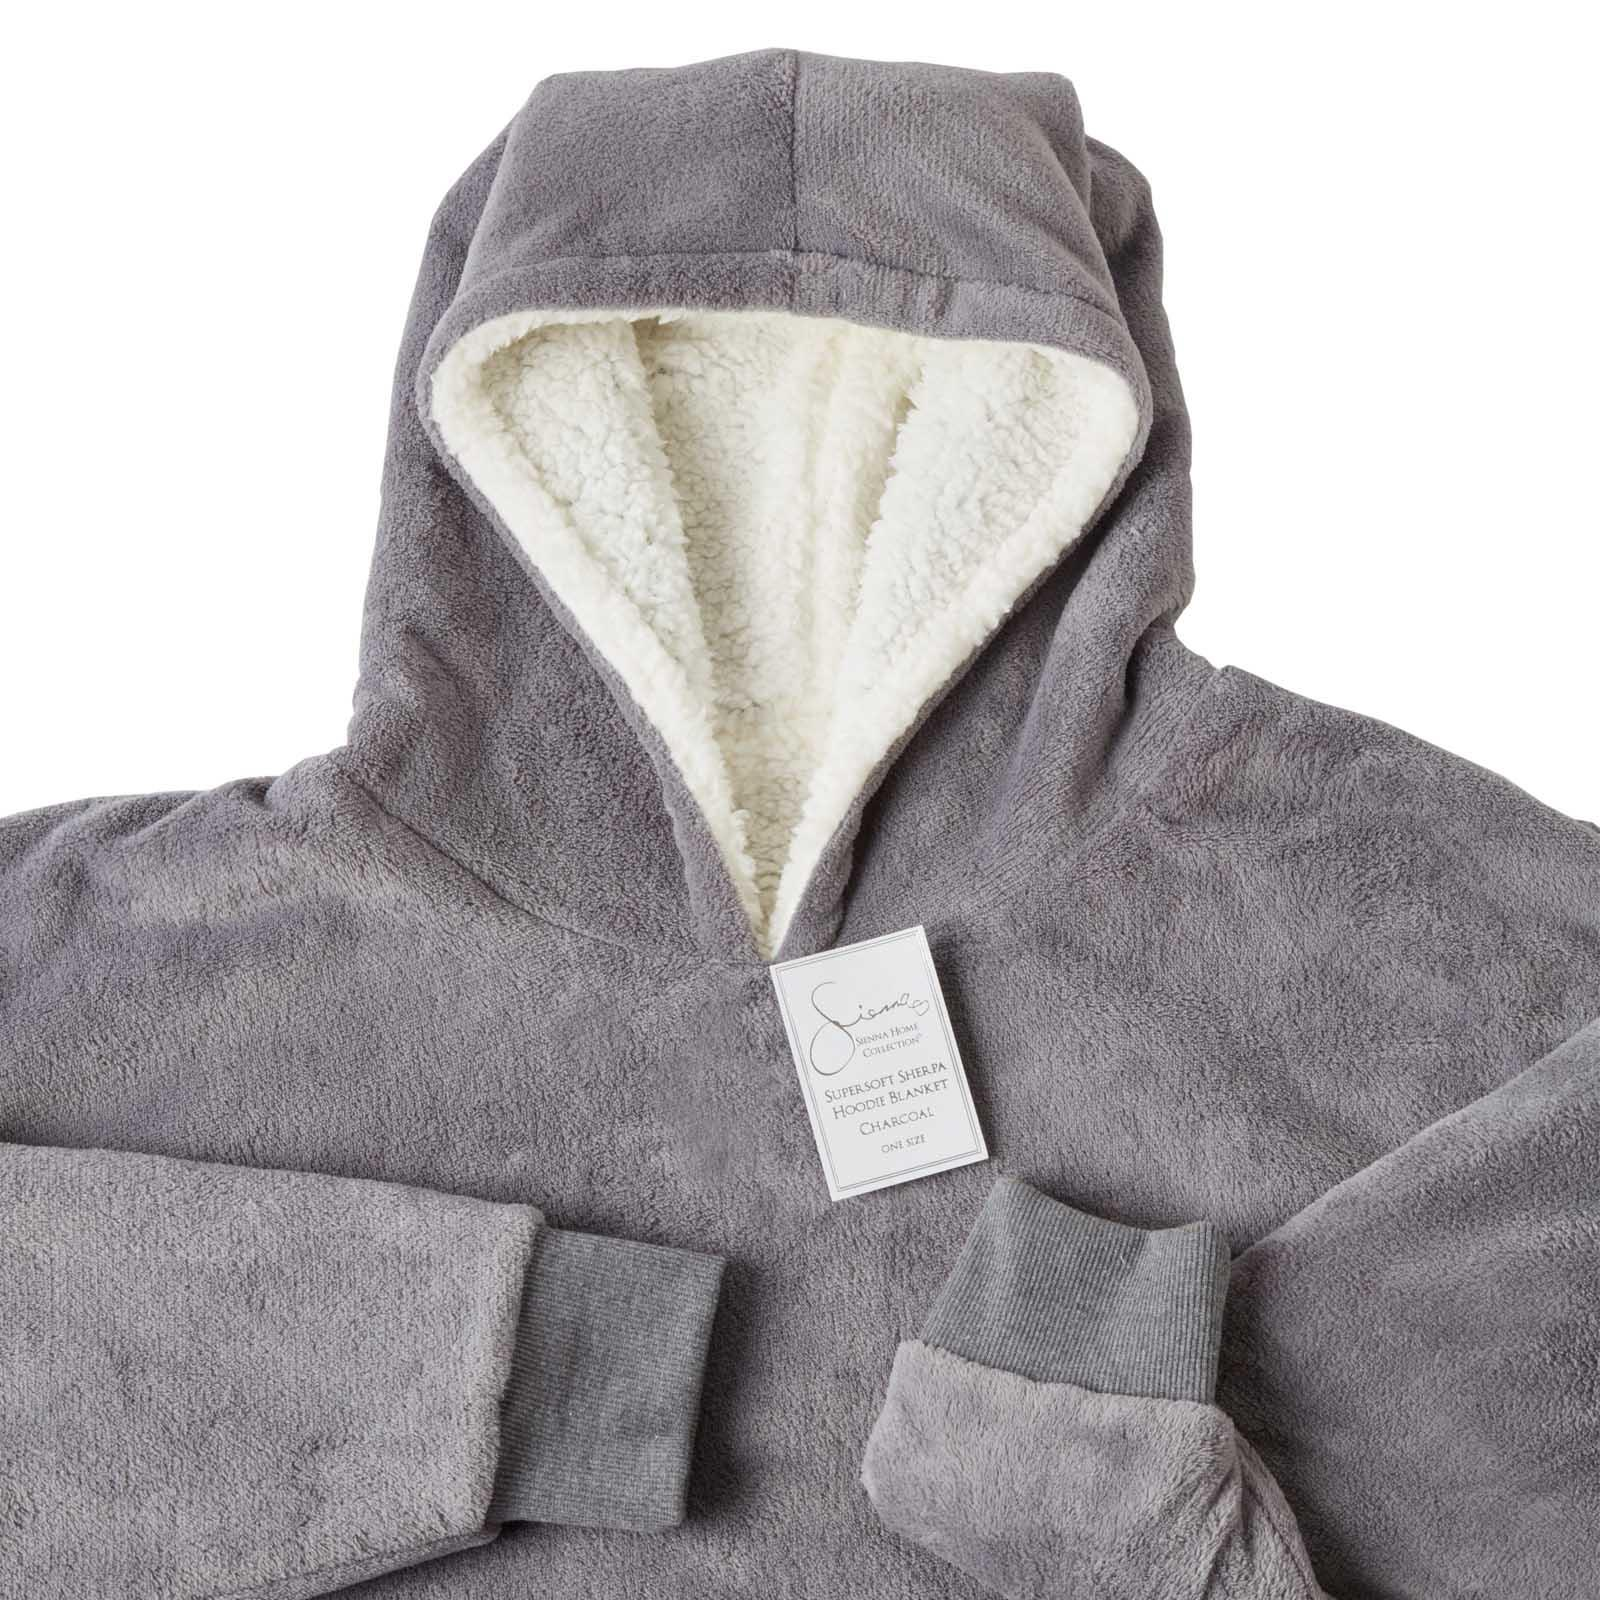 Sienna-Hoodie-Blanket-Oversized-Ultra-Plush-Sherpa-Giant-Big-Hooded-Sweatshirt thumbnail 12